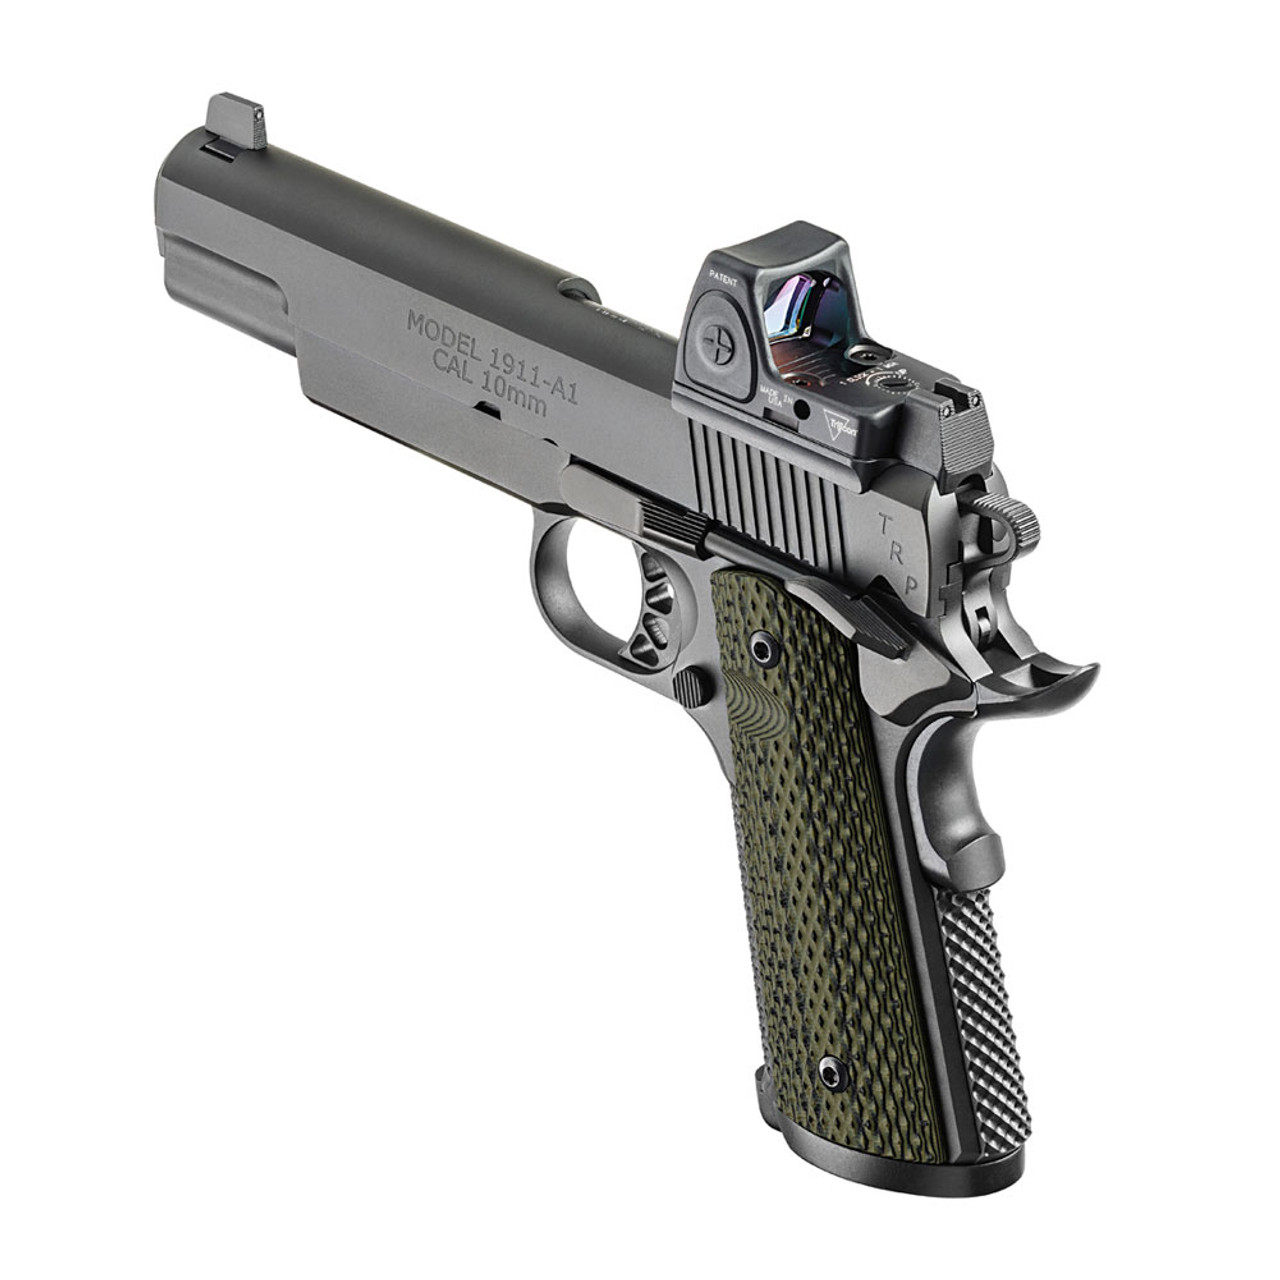 SPRINGFIELD ARMORY 1911 TRP 10mm 5in 8rd Pistol with RMR Sight and Range  Bag (PC9510RMR18)